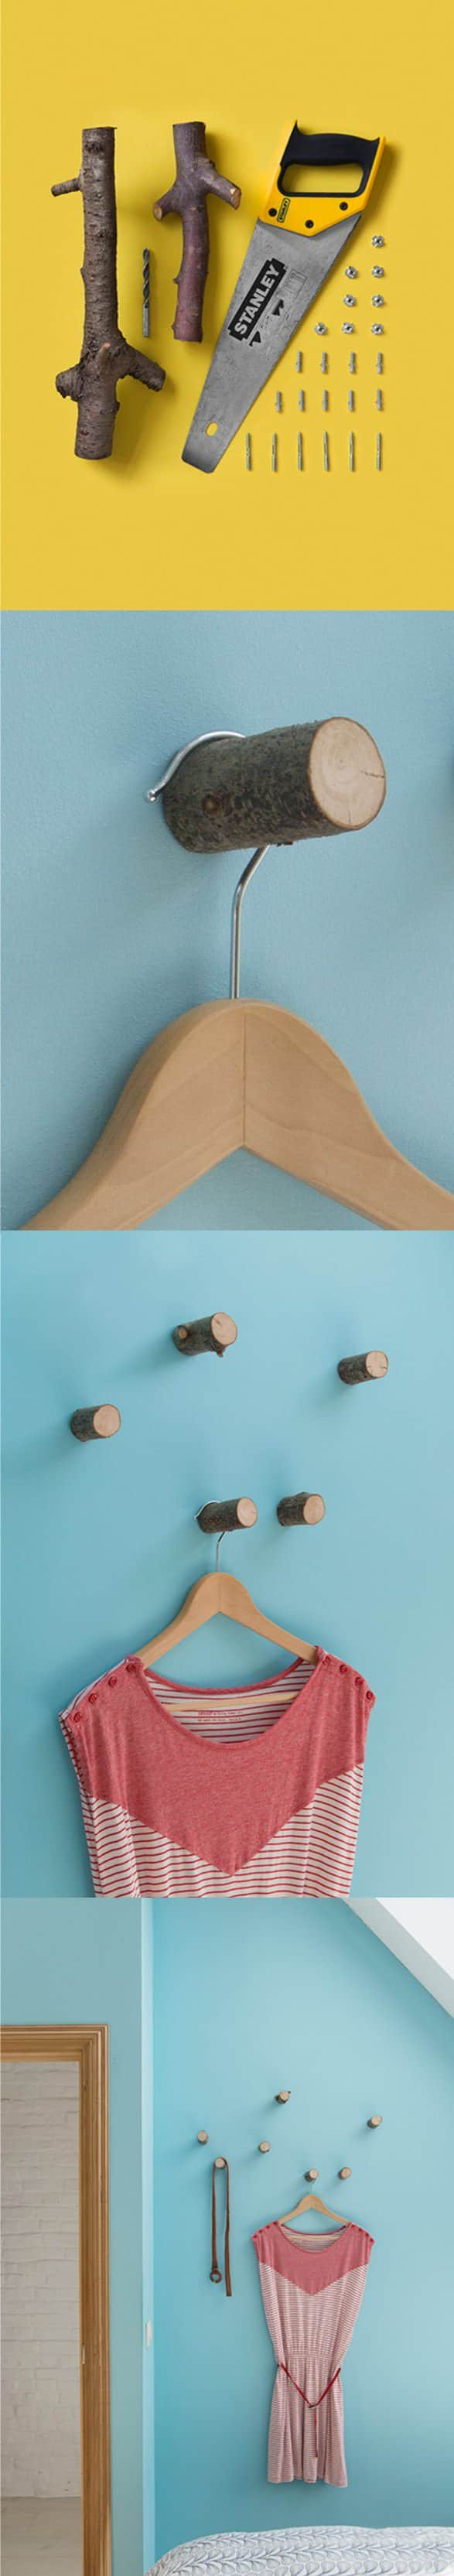 Diy: Hangers from Small Wood Logs Accessories Do-It-Yourself Ideas